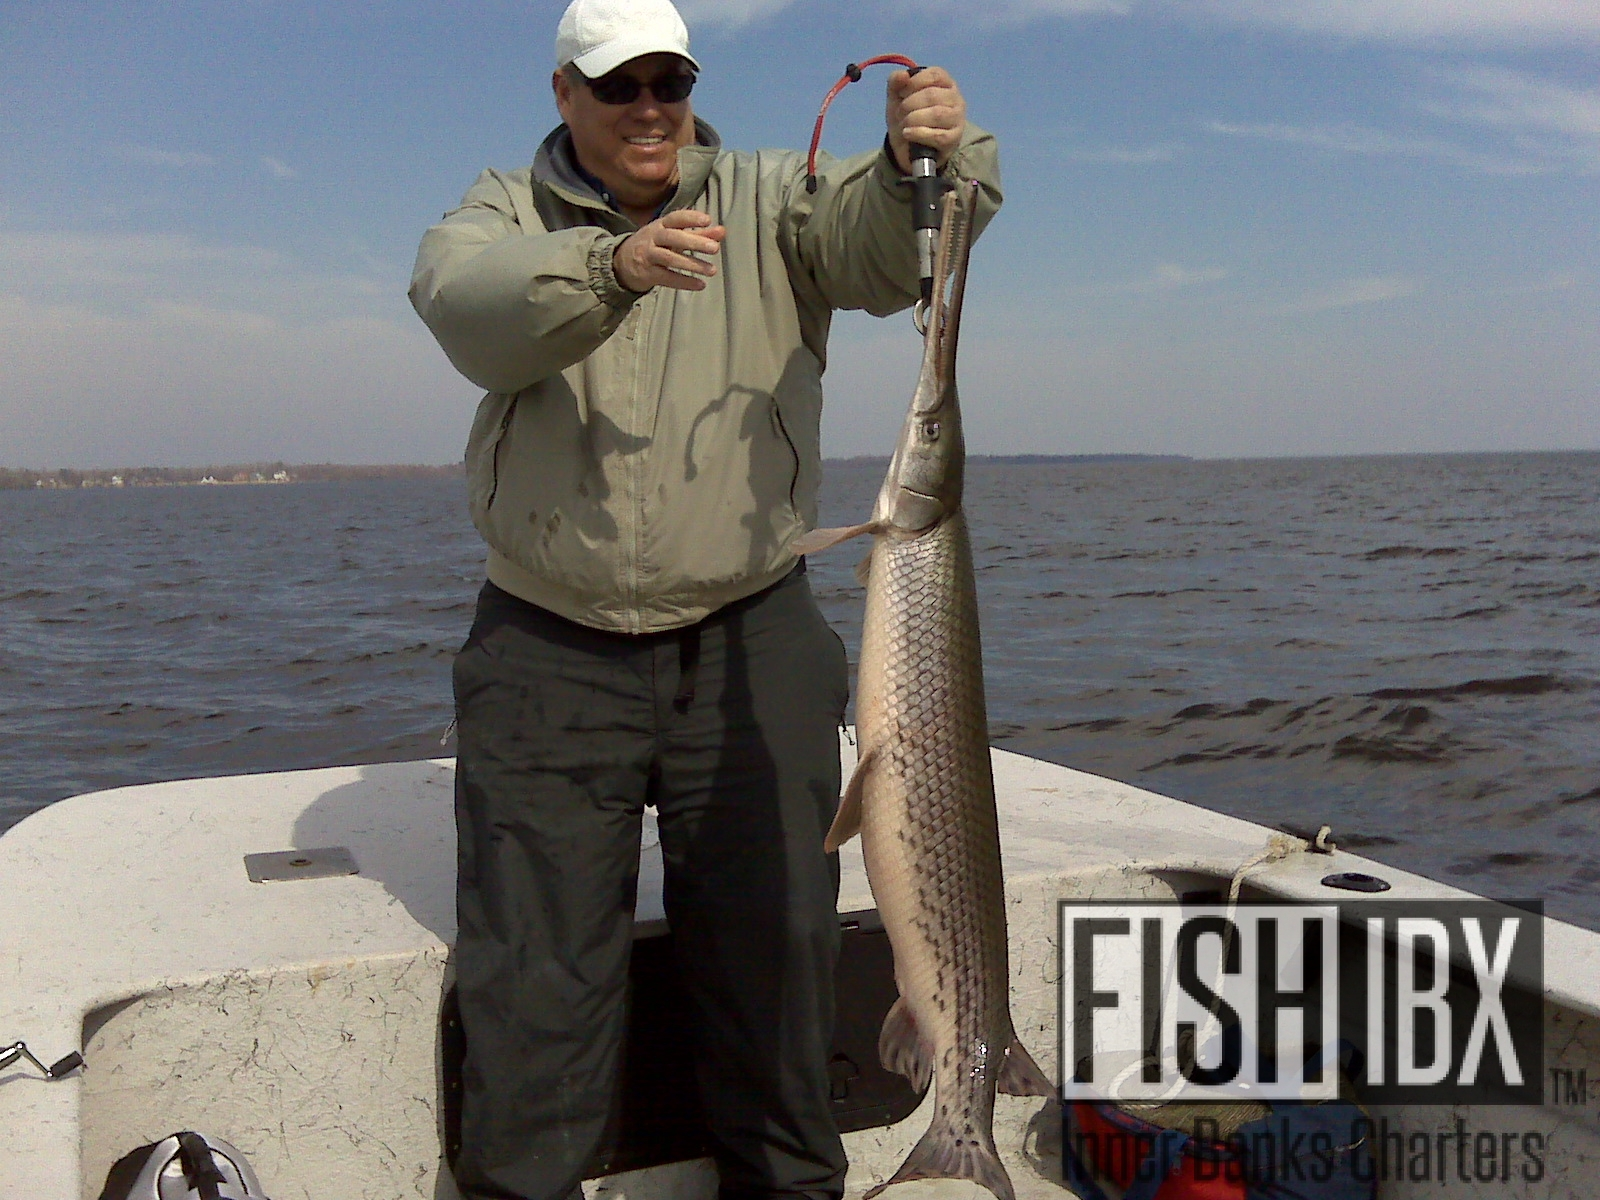 Ways 13 fishibx eastern nc fishing guide for Northeast saltwater fishing reports